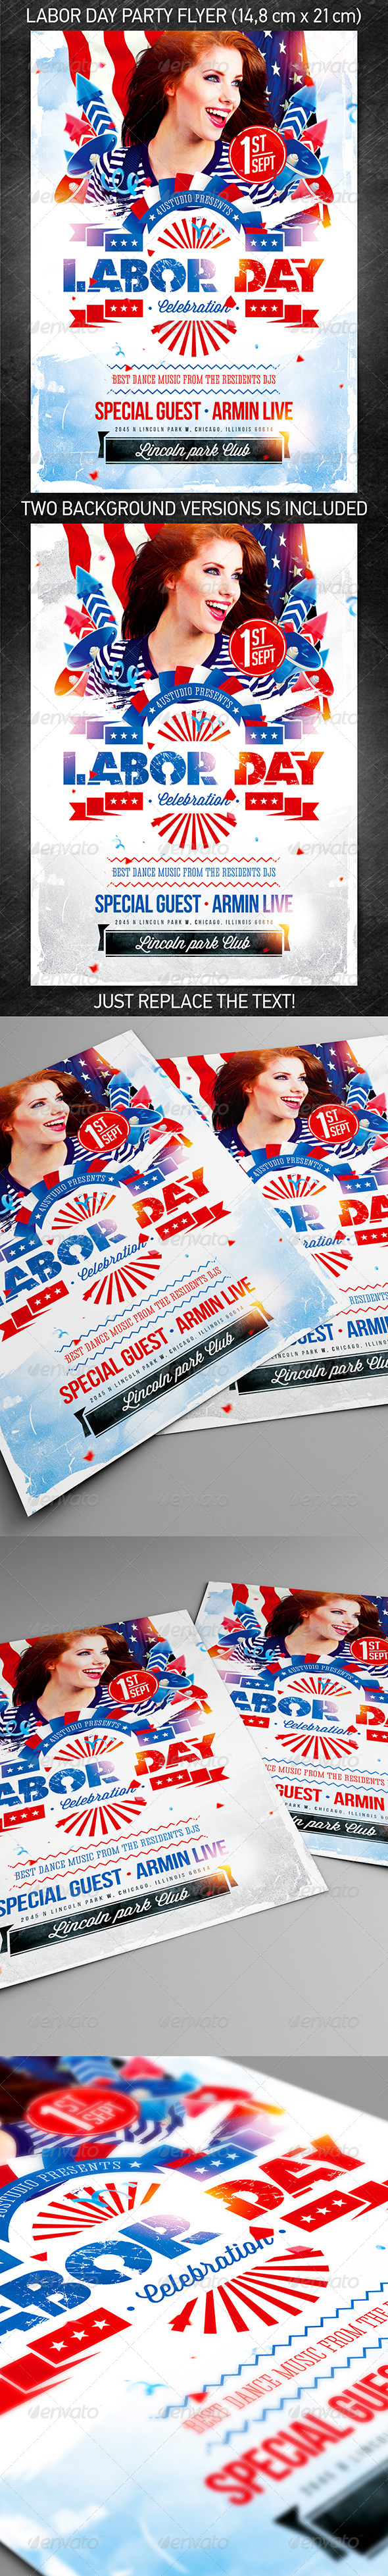 Labor Day Party Flyer vol.2 - Holidays Events